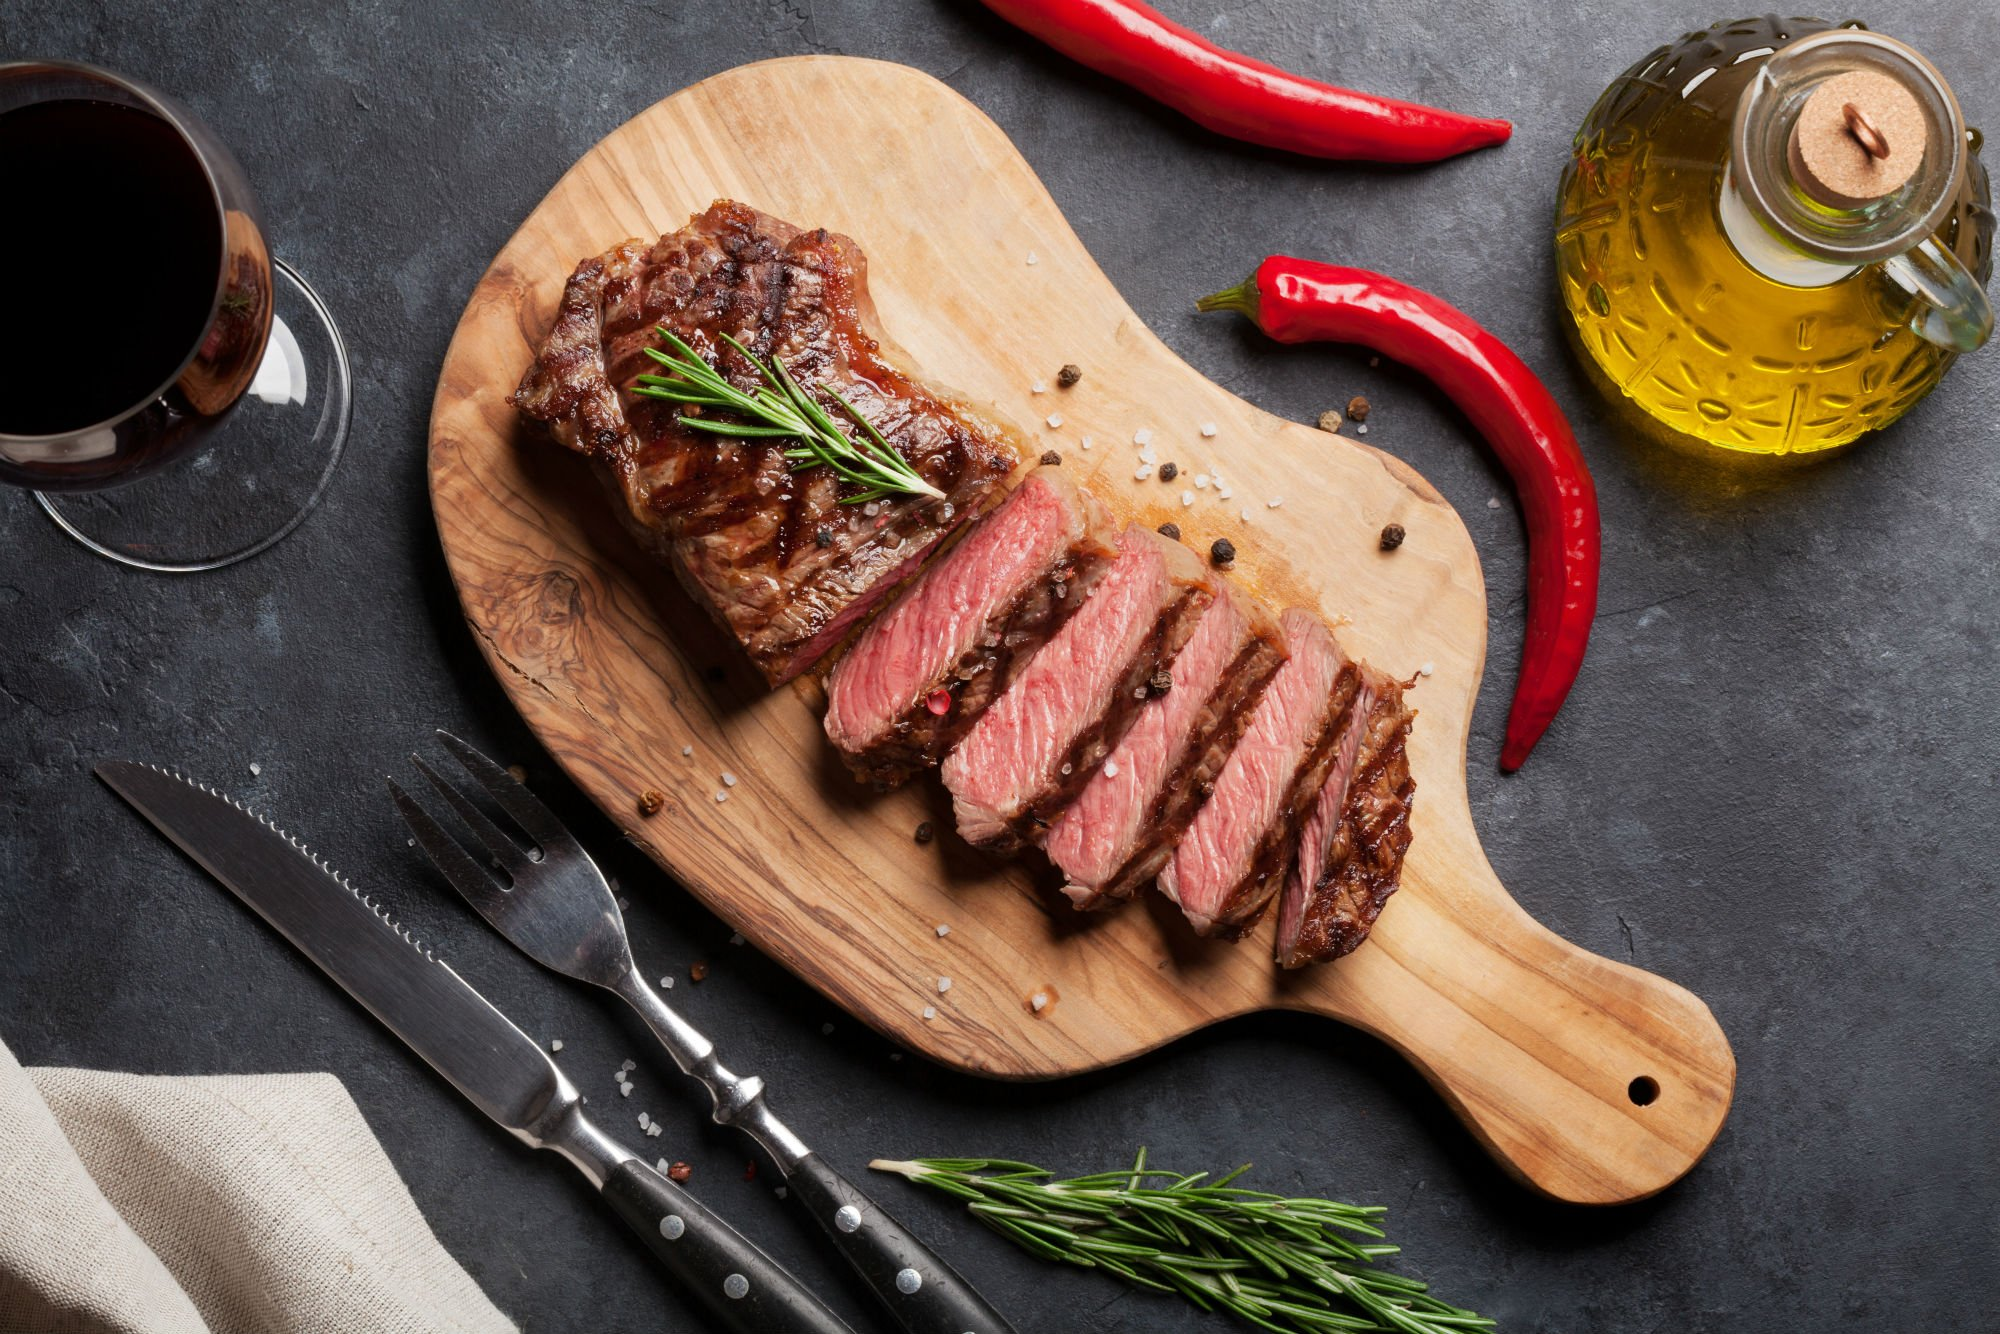 THREE WAYS TO COOK THE PERFECT TOP SIRLOIN